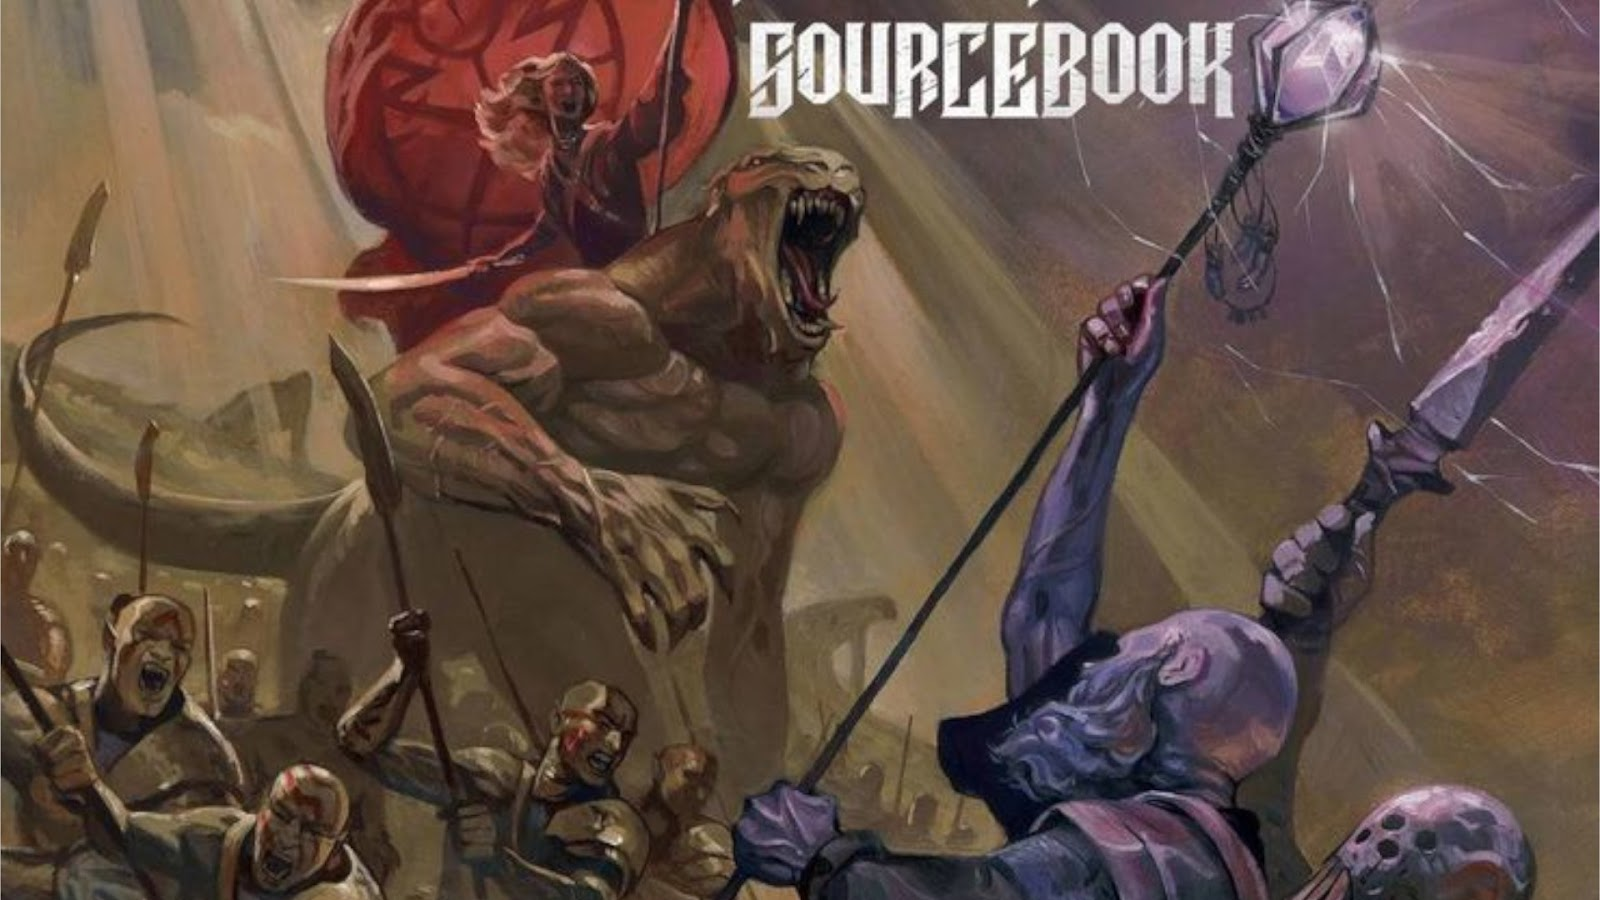 Board Games News Collider DC Comics to produce DnD Sourcebook